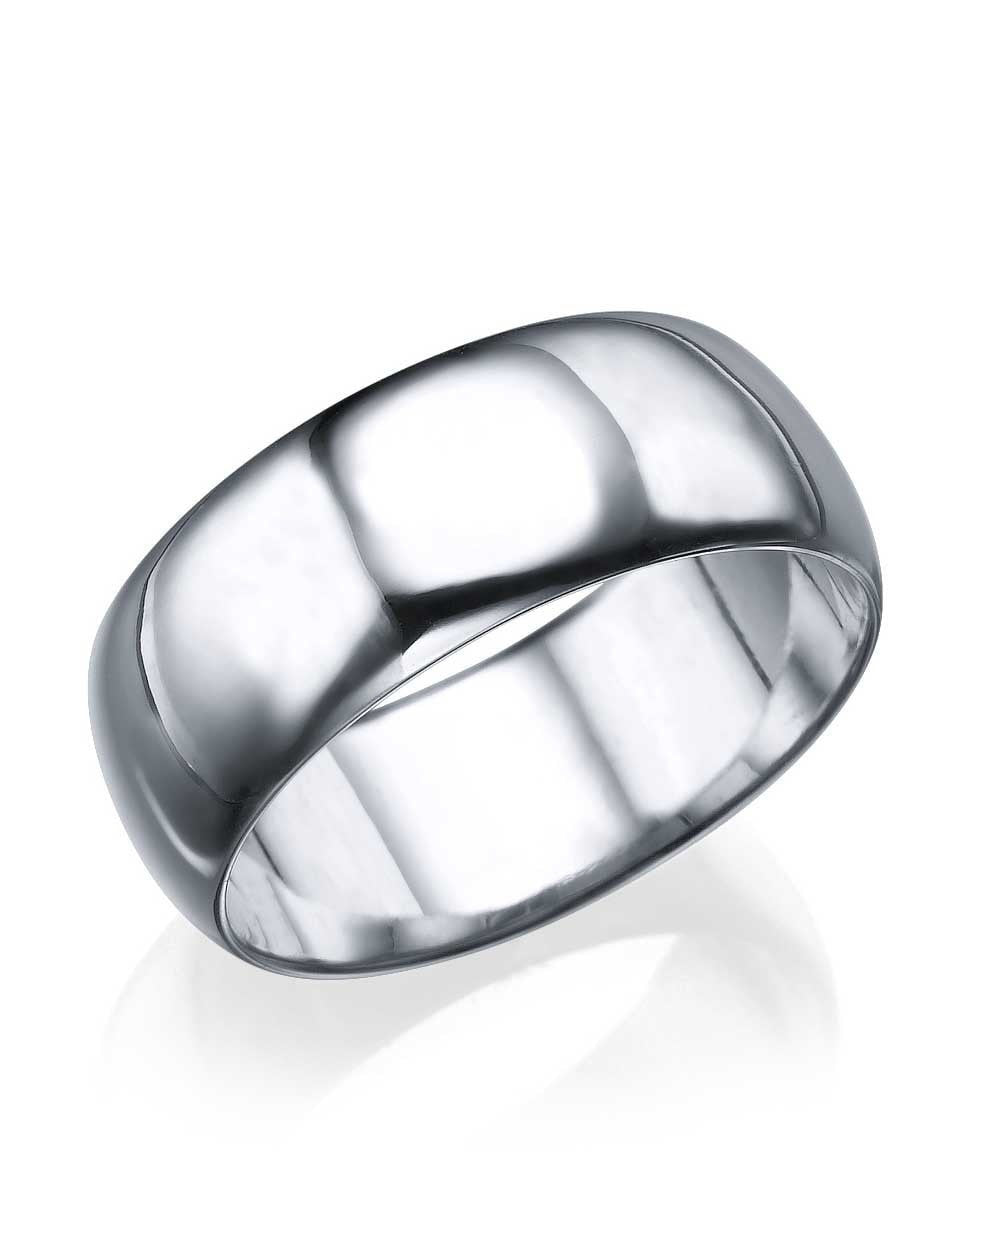 Wedding Rings Platinum Wedding Ring - 7.7mm Rounded Plain Band